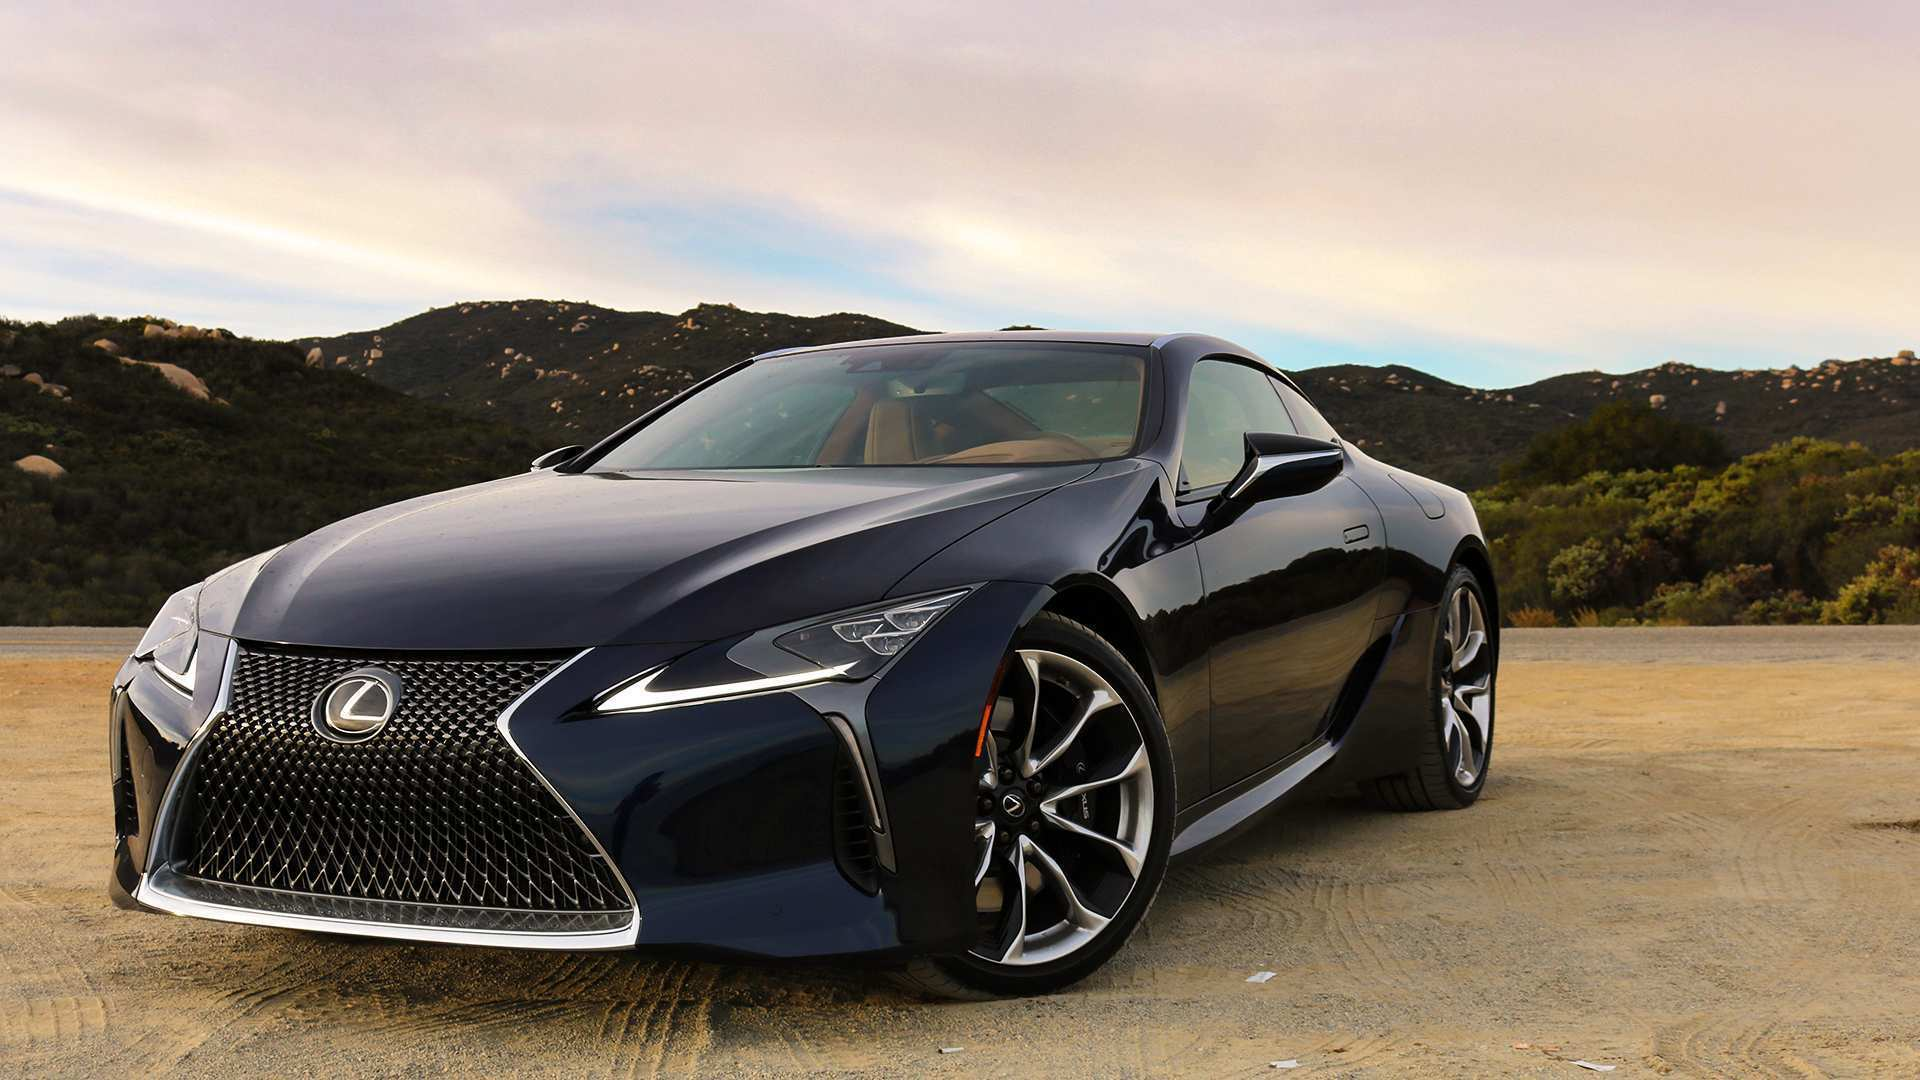 85 The Best 2020 Lexus Lf Lc Speed Test